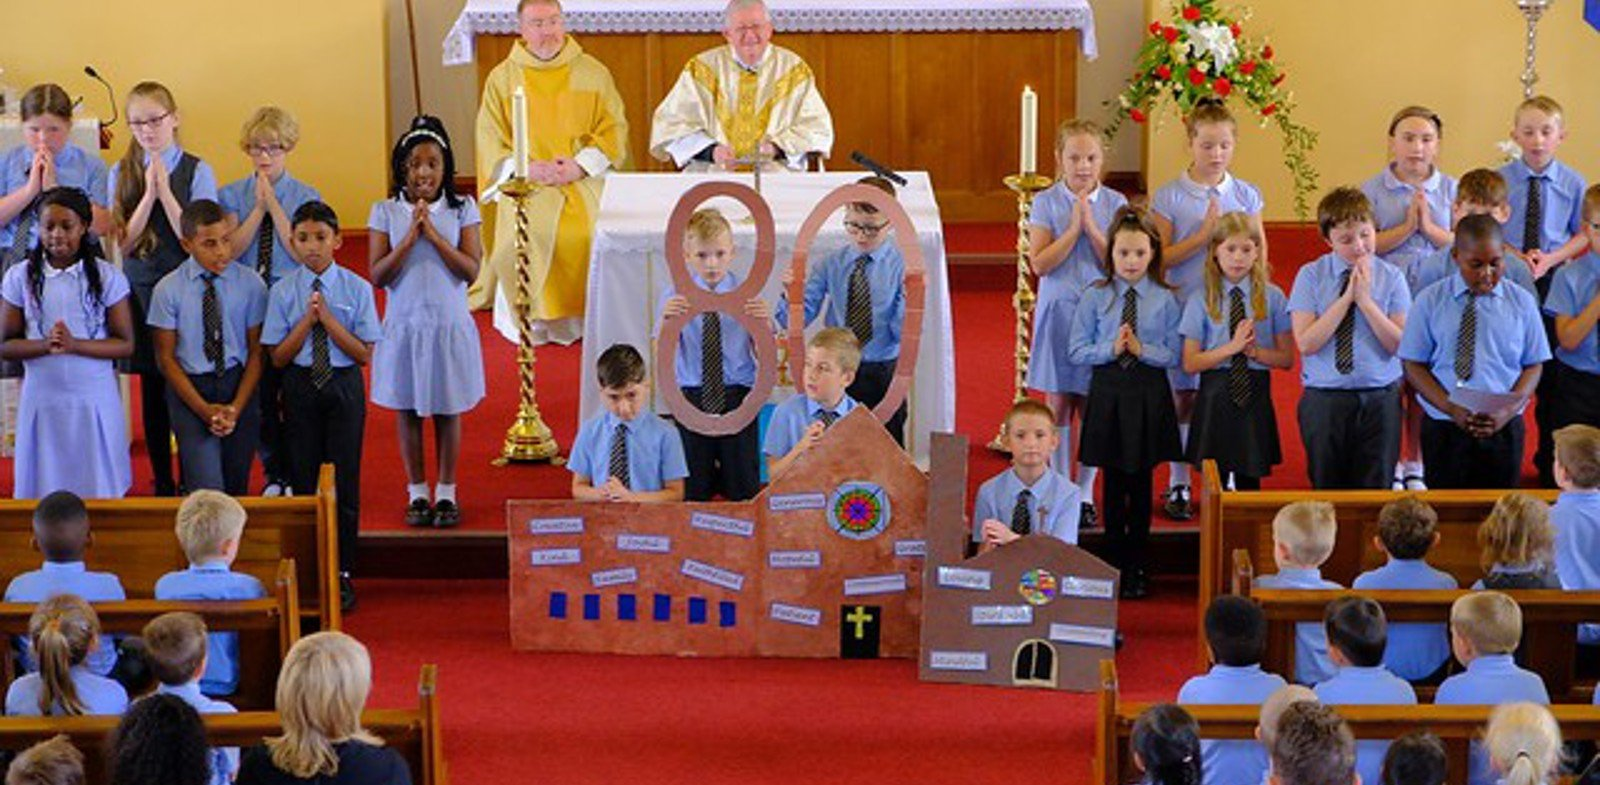 School and parish join forces for milestone anniversary